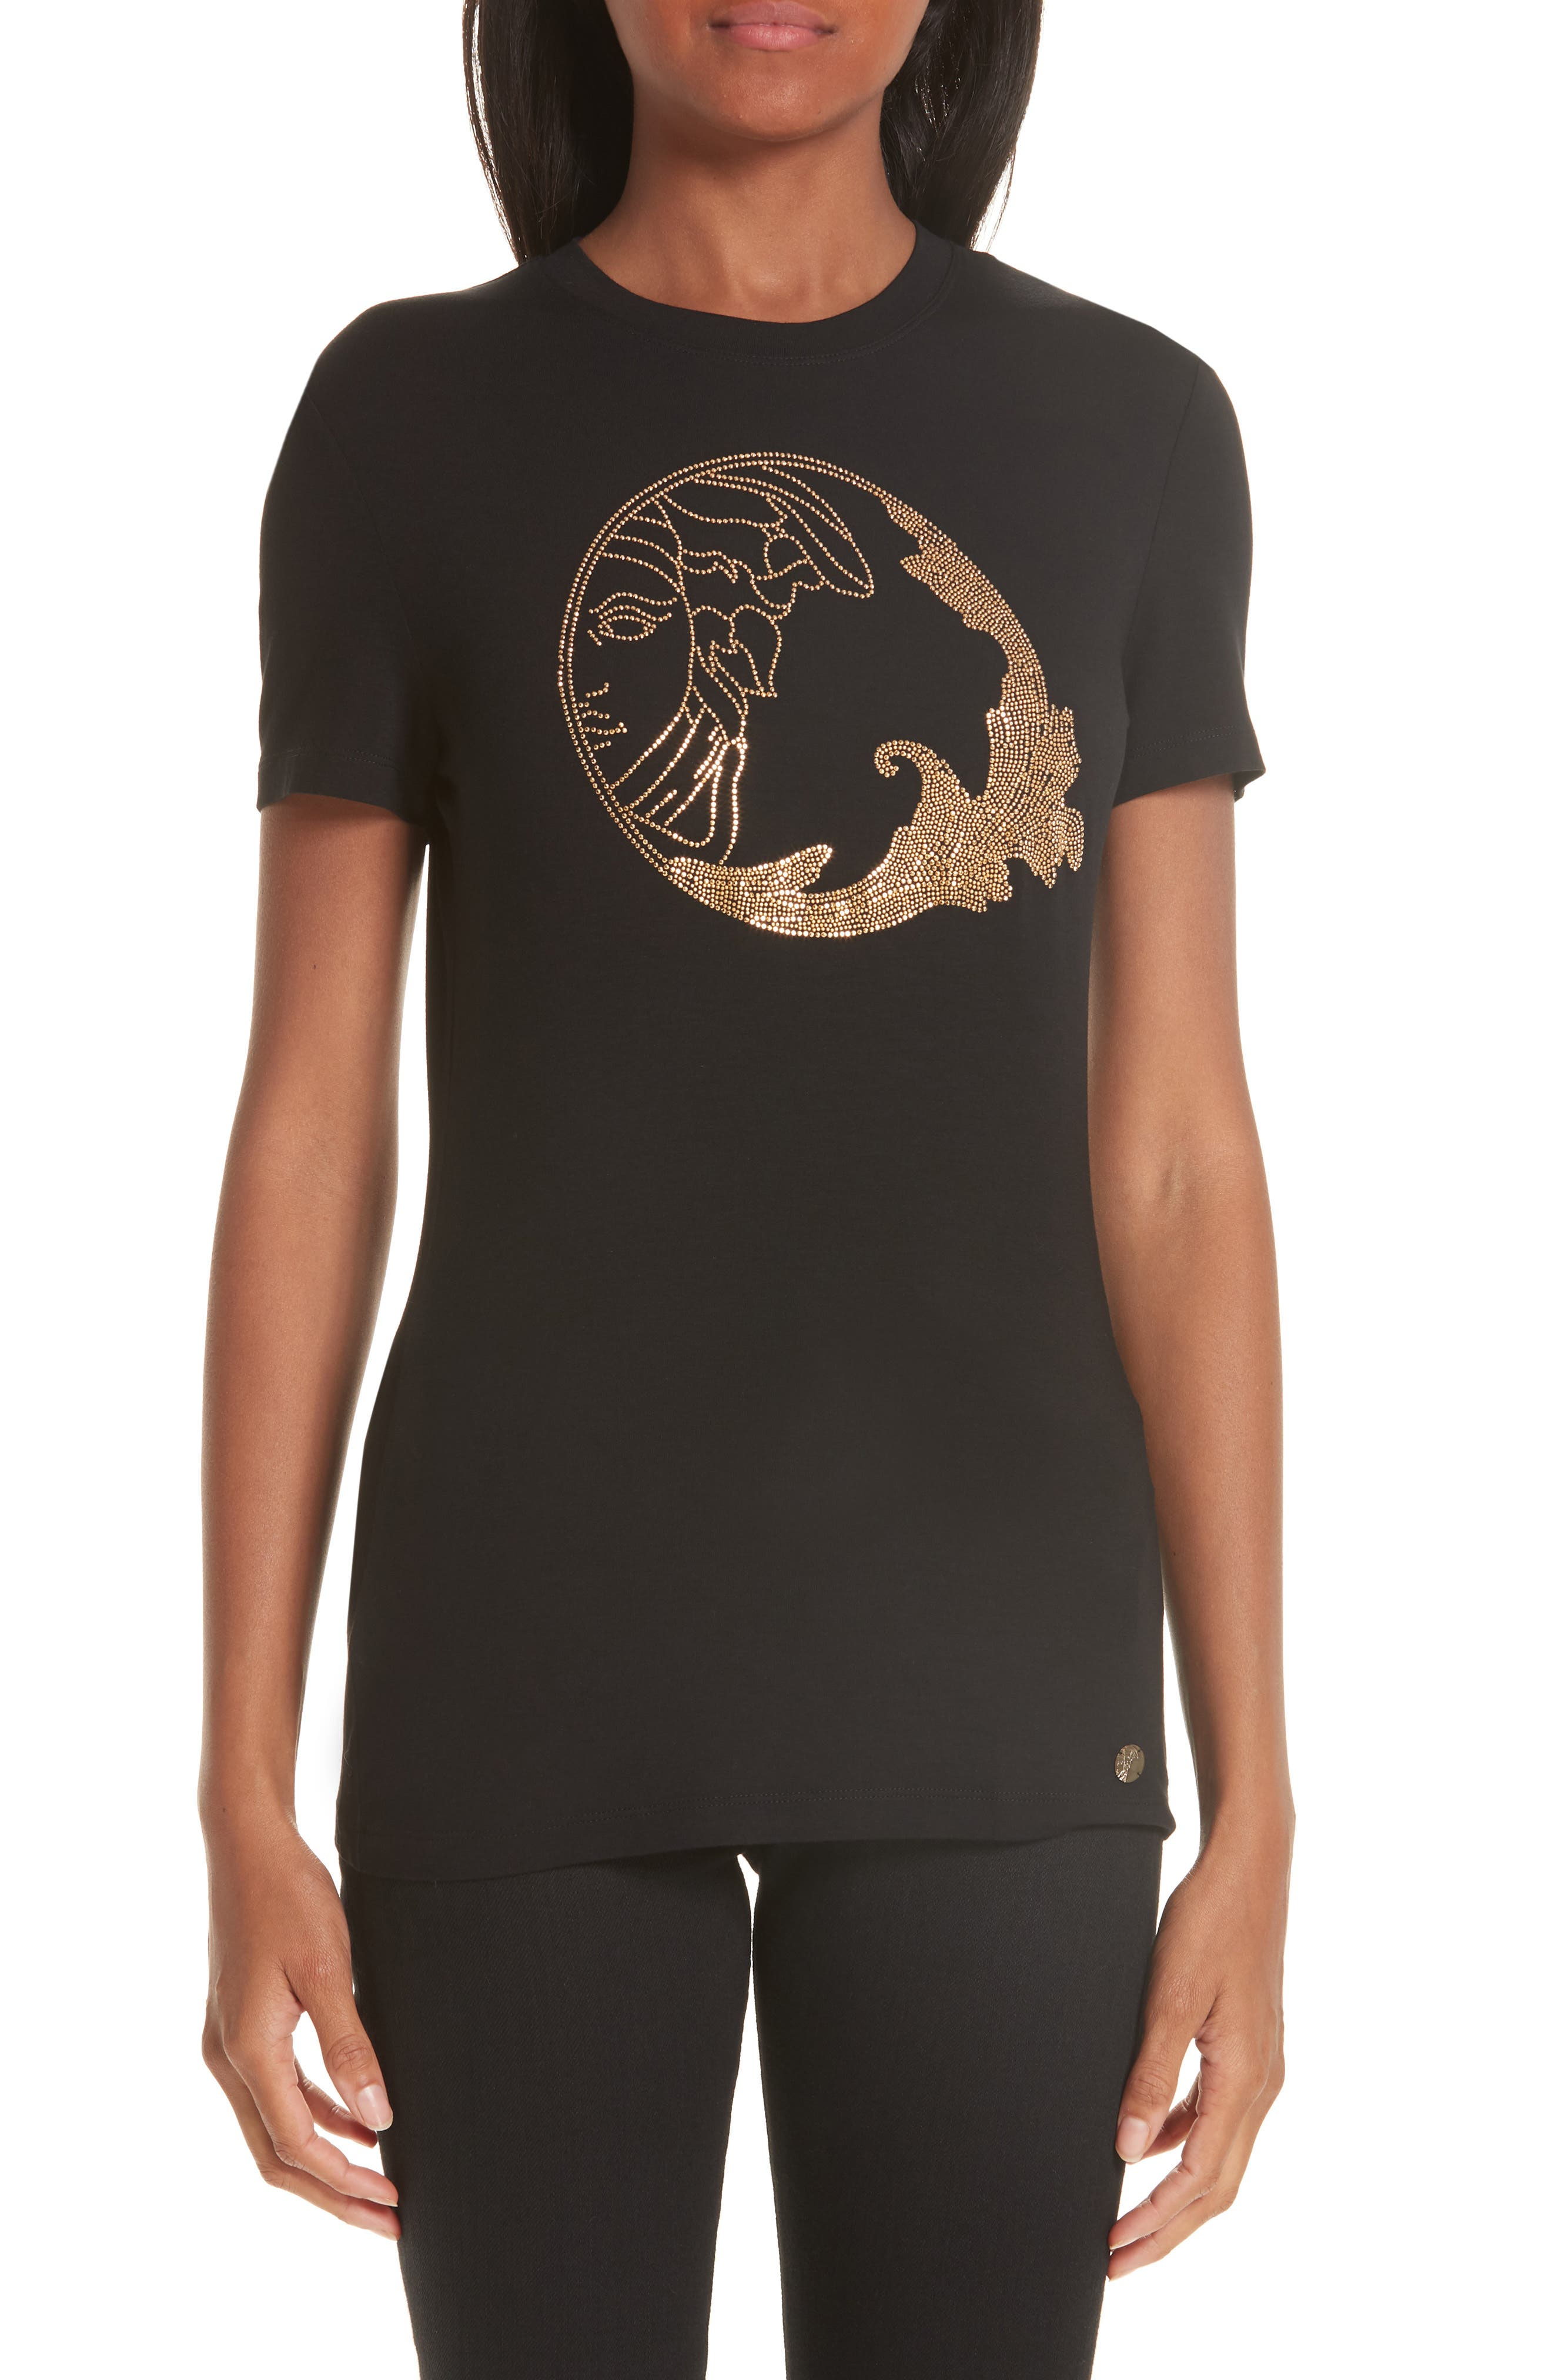 VERSACE COLLECTION, Medusa Crystal Embellished Jersey Tee, Main thumbnail 1, color, BLACK